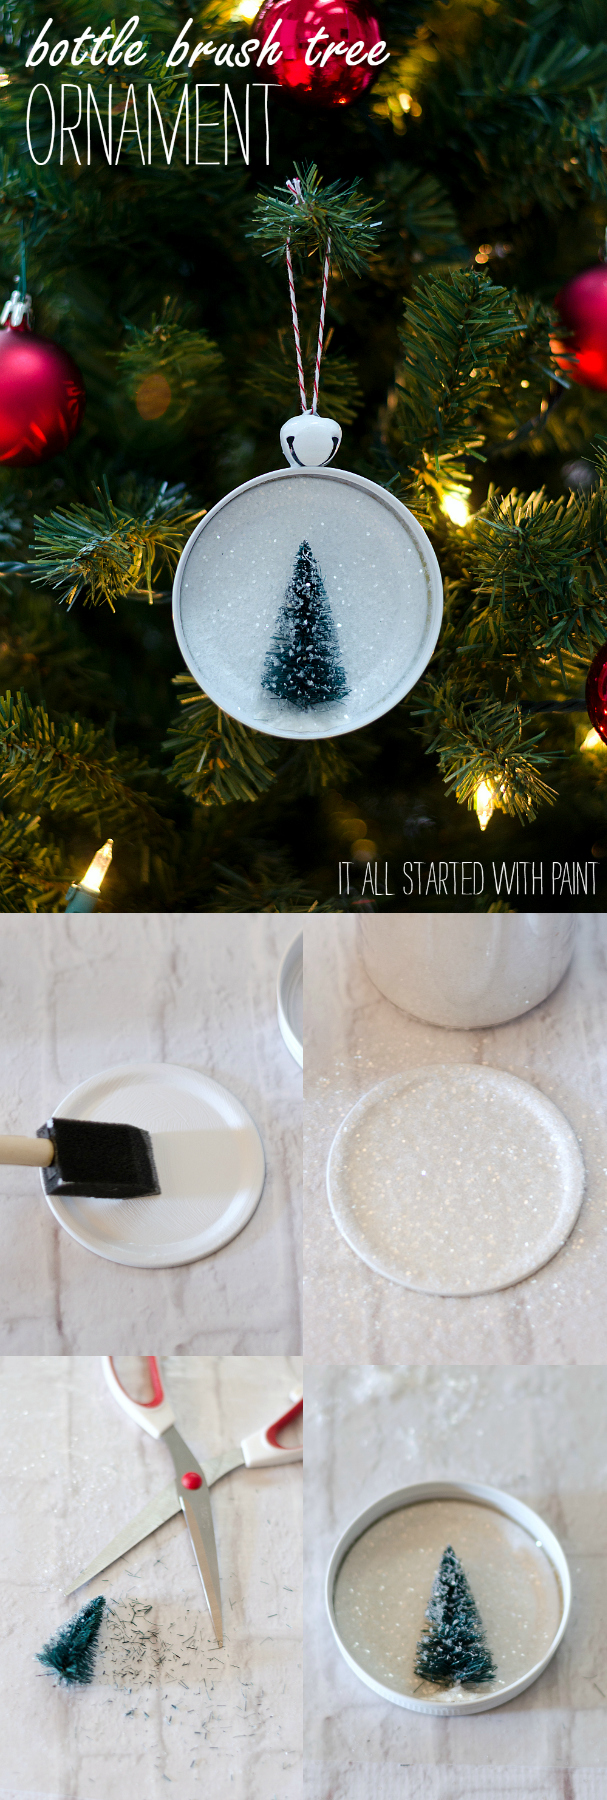 Bottle Brush Tree Christmas Ornament Ideas